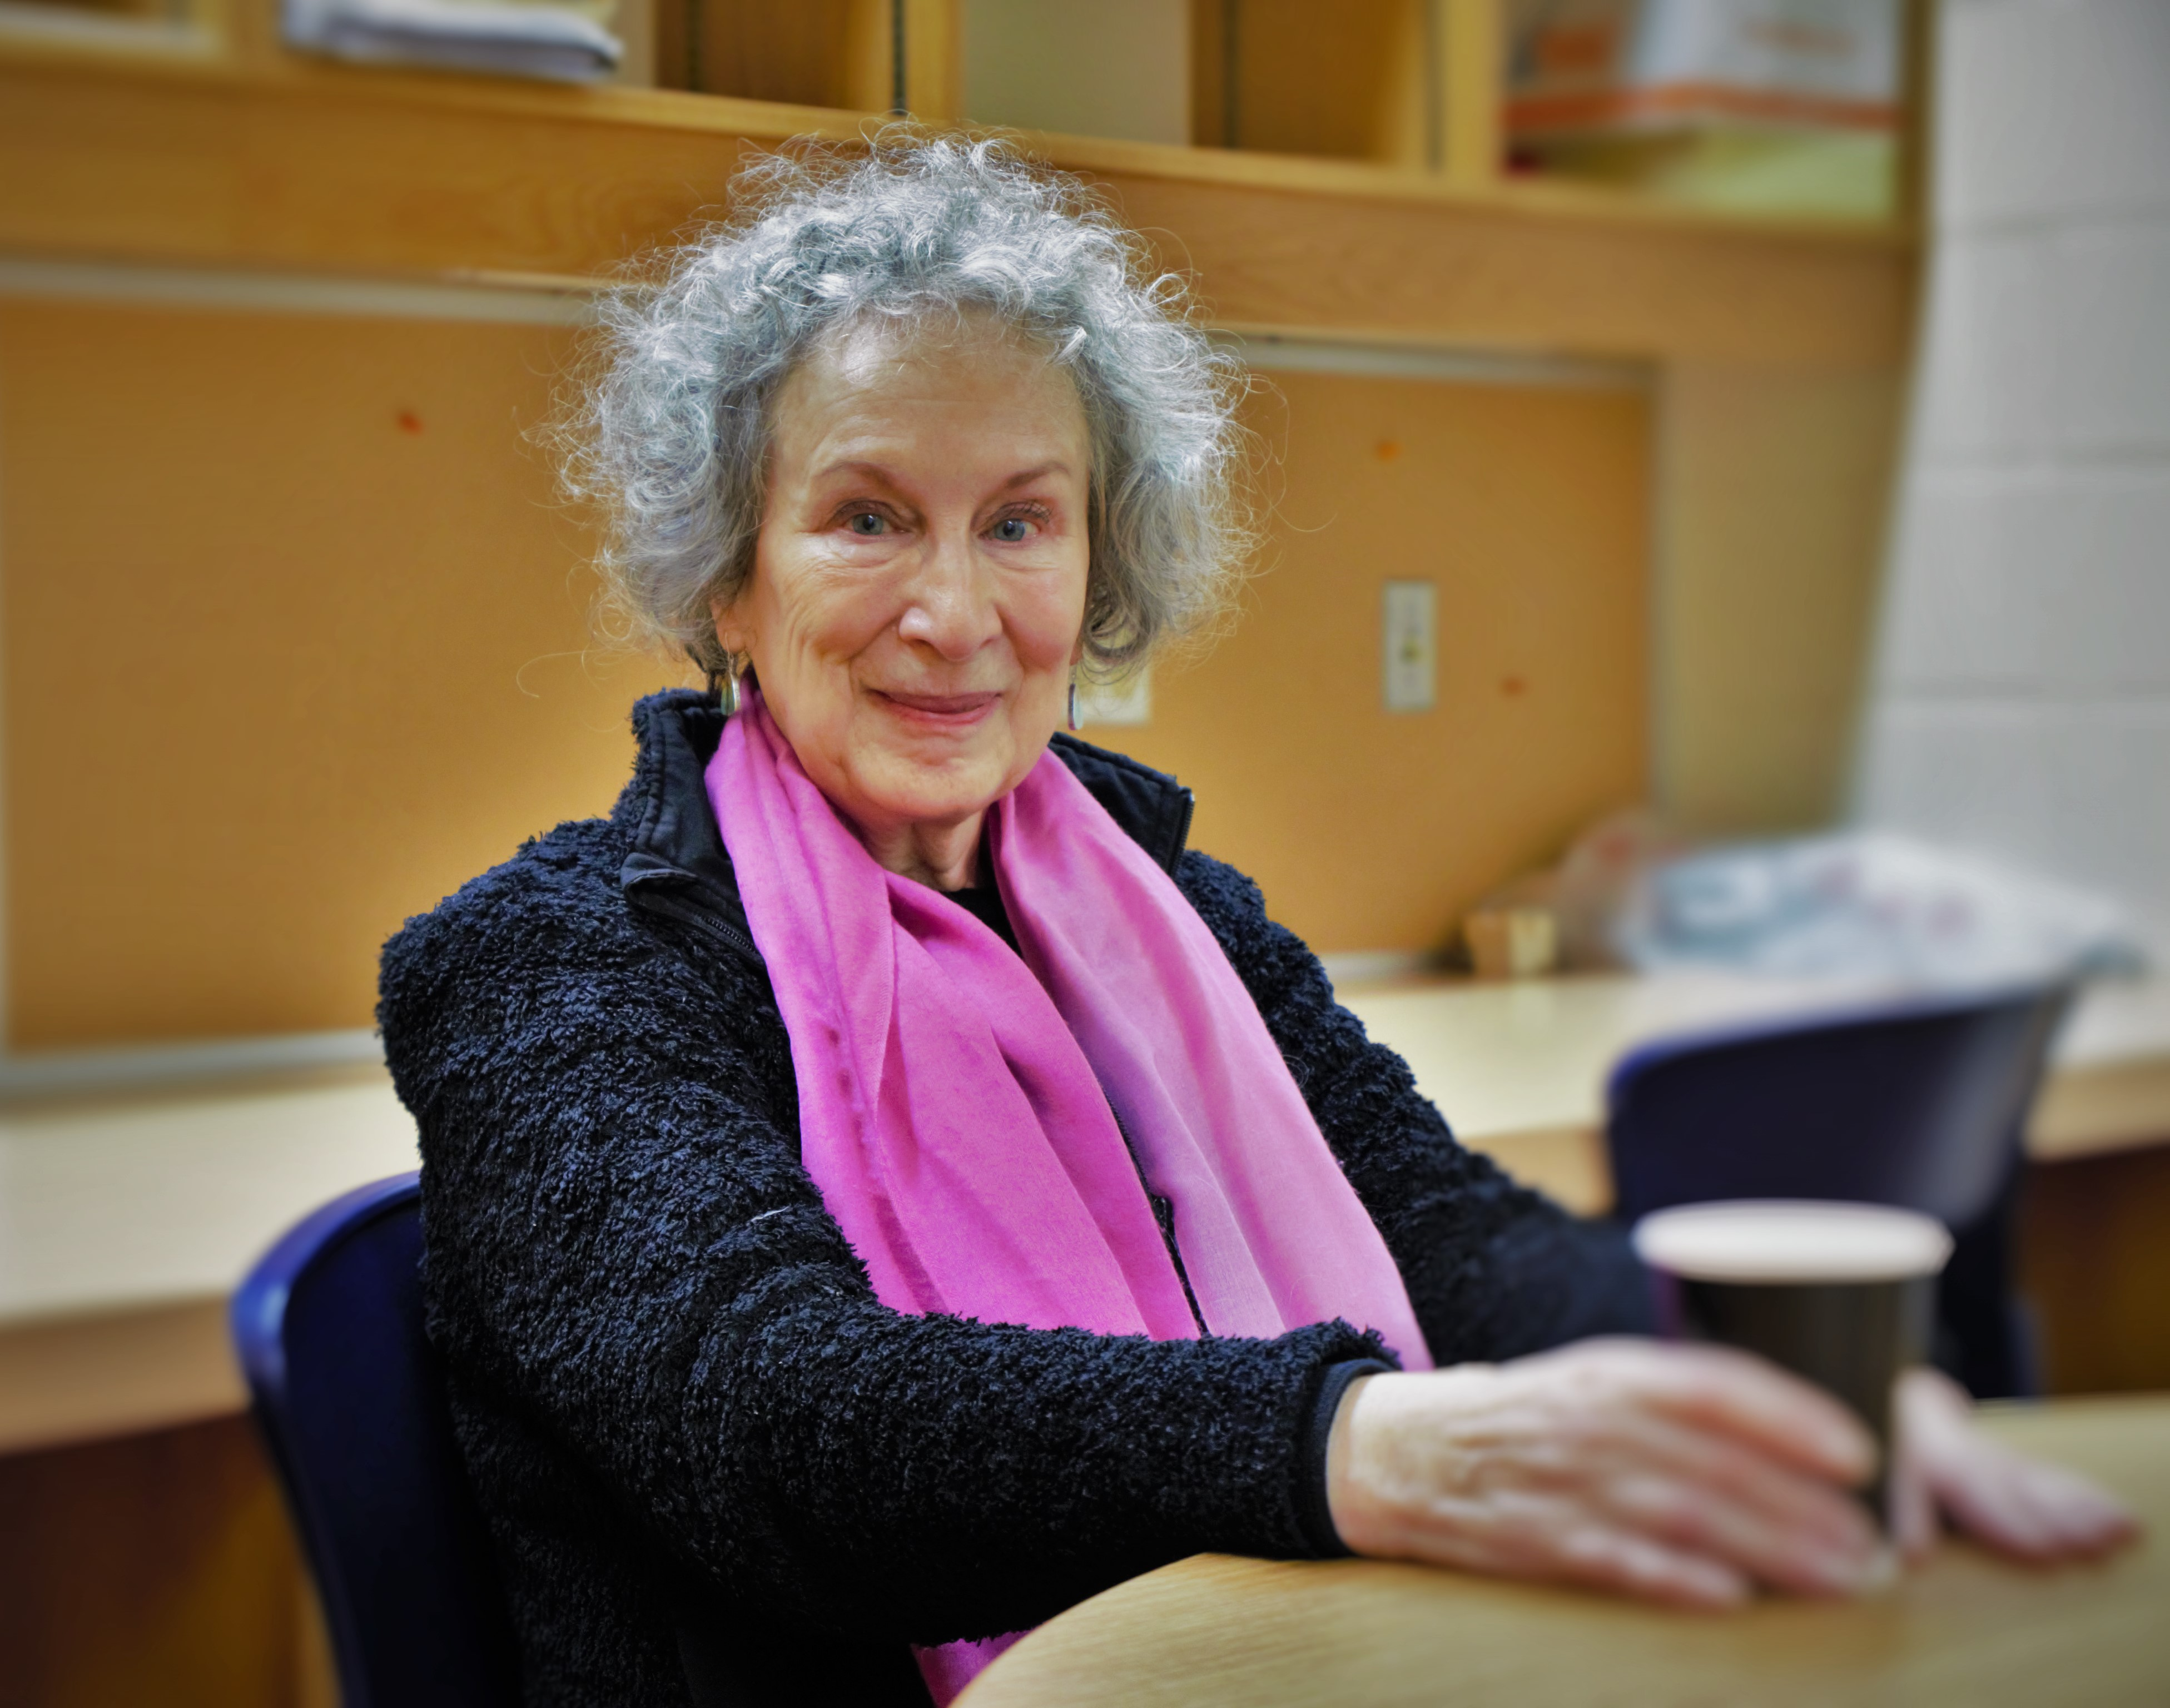 Margaret Atwood poses for a photo in the Laurentian University JN Desmarais library. Photo by Zara Golafshani